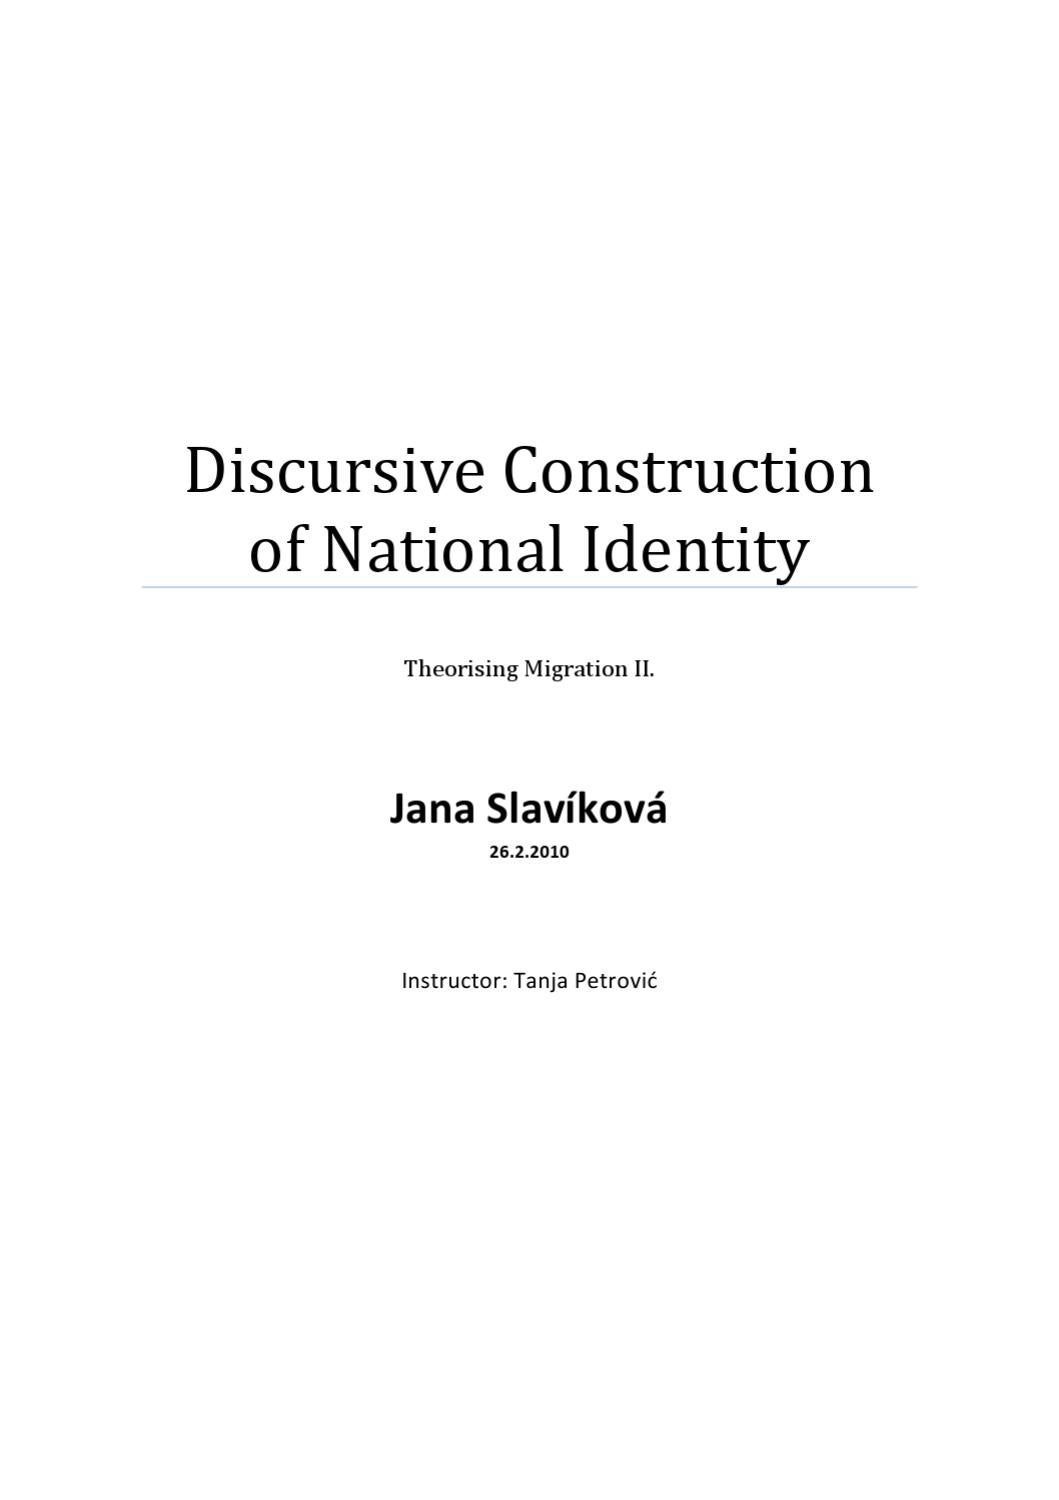 the discursive construction of national identities The discursive construction of national identity analyses discourses of national identity in europe with particular attention to austriain the tradition of critical discourse analysis, the authors analyse current and on-going transformations in the self-and other definition of national identities using an innovative interdisciplinary approach which.